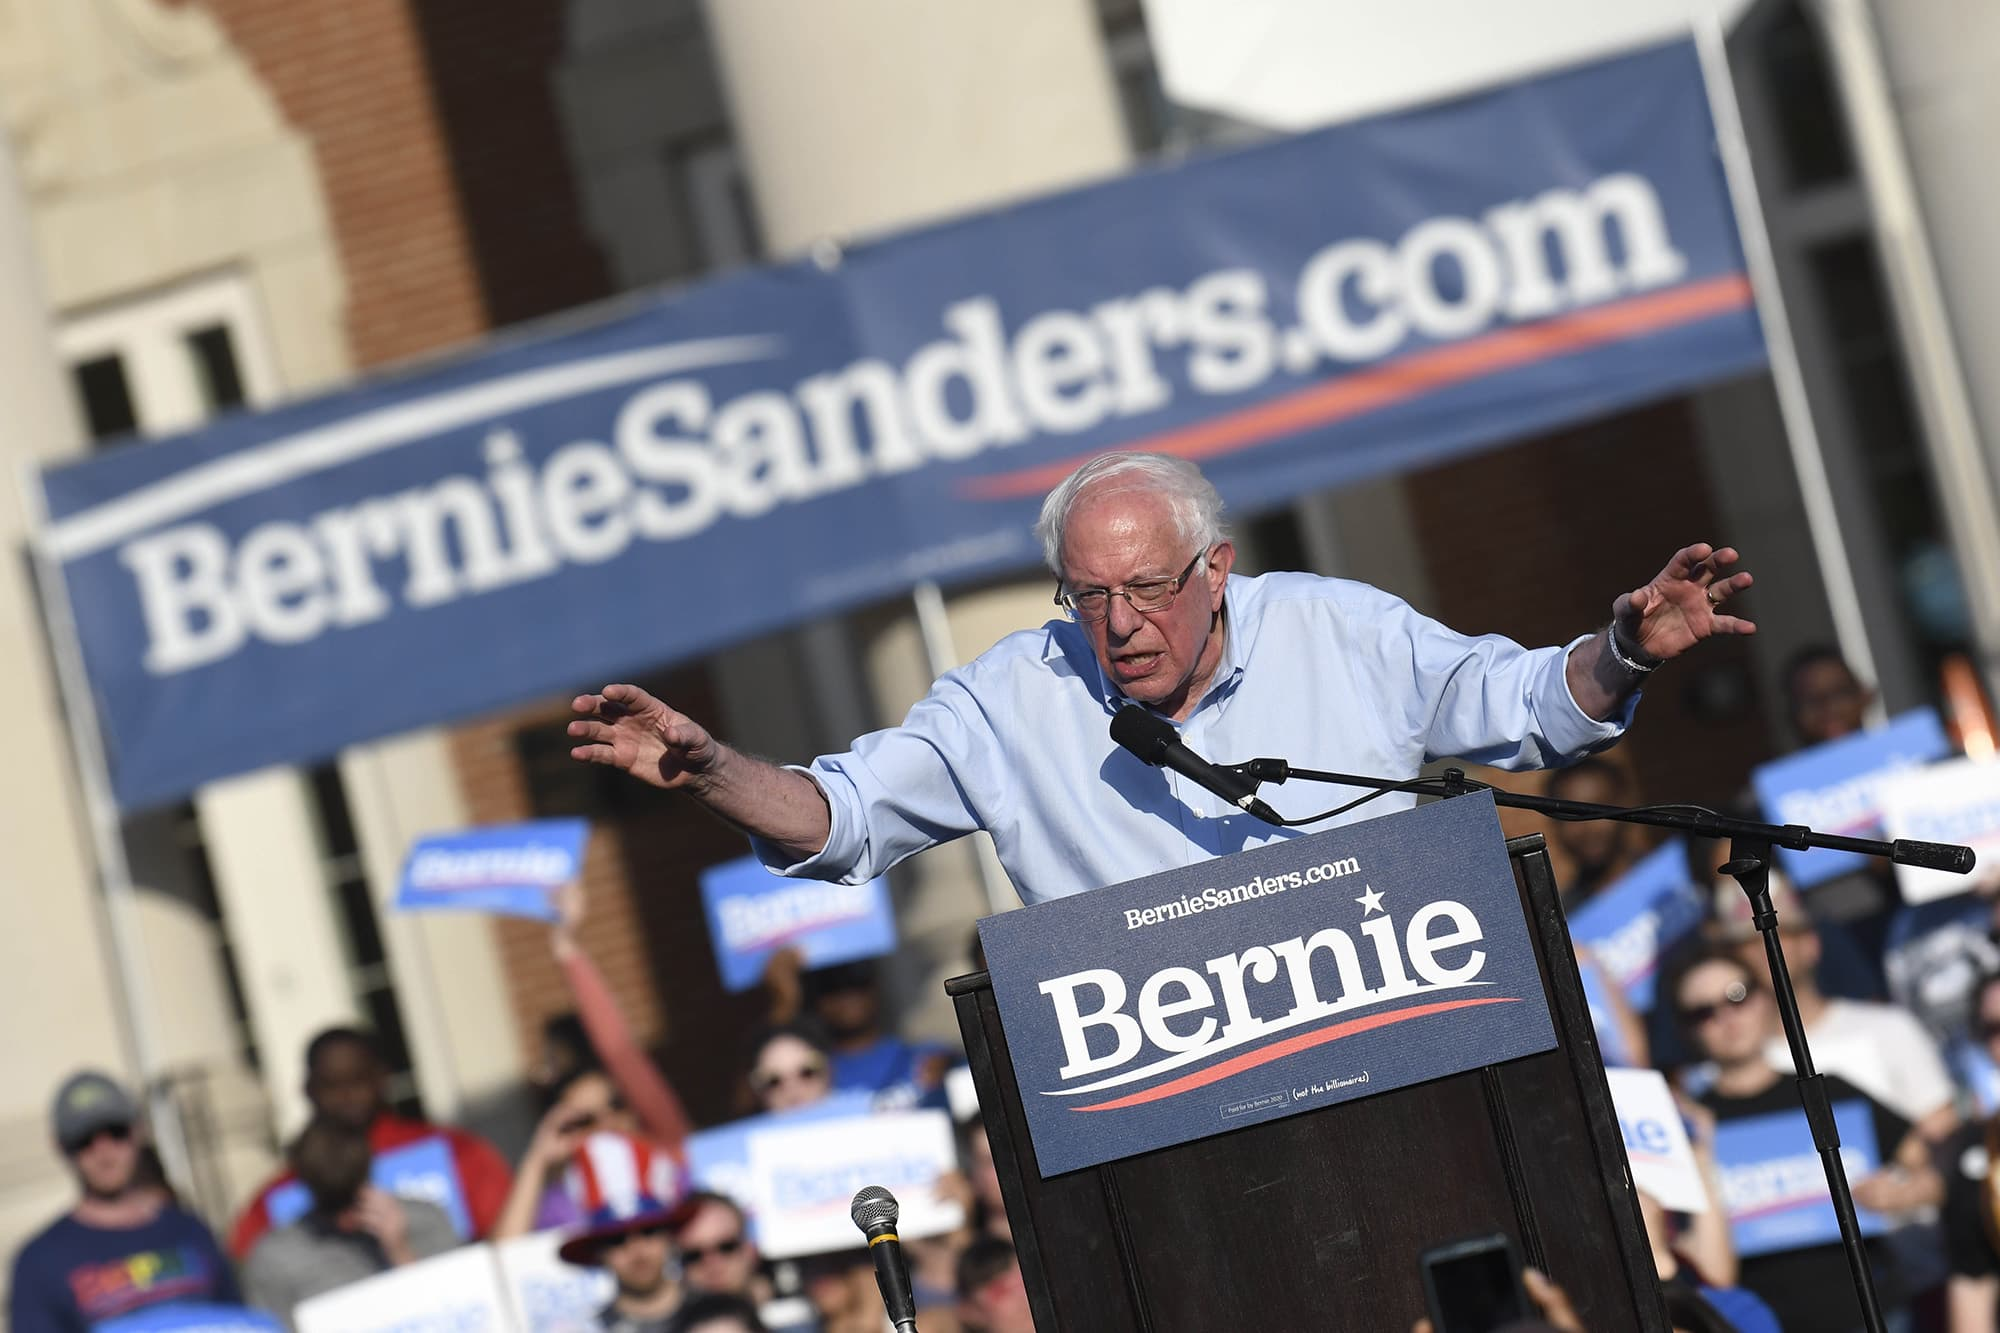 Sen. Bernie Sanders of Vermont holds a rally at Central Piedmont Community College on the lawn of Overcash Center in Charlotte, N.C., on Friday, May 17, 2019. (David T. Foster III/Charlotte Observer/TNS via Getty Images)